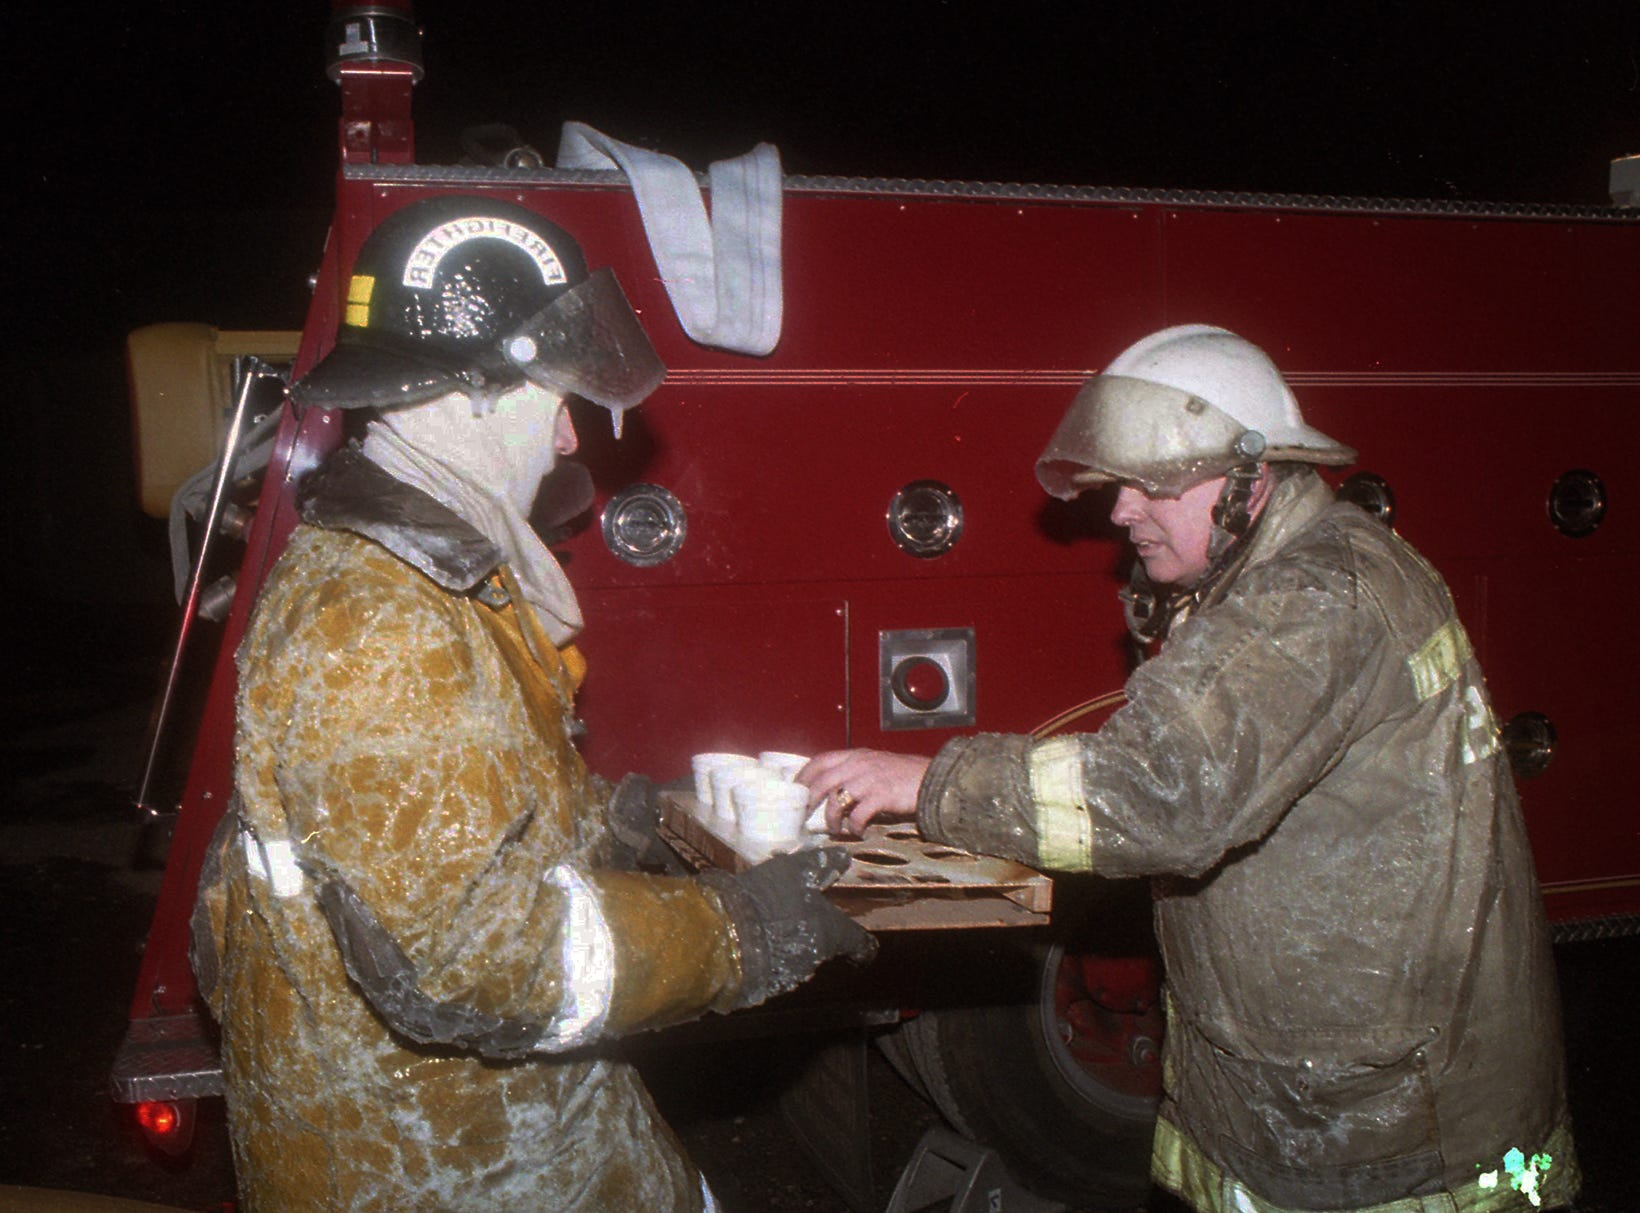 Firefighters take hot beverages during the fire. A fire began at the former Thonet Furniture plant at 491 East Princess Street in York on December 11, 1993. Eventually, the four alarm fire spread through the complex of buildings and several other properties.